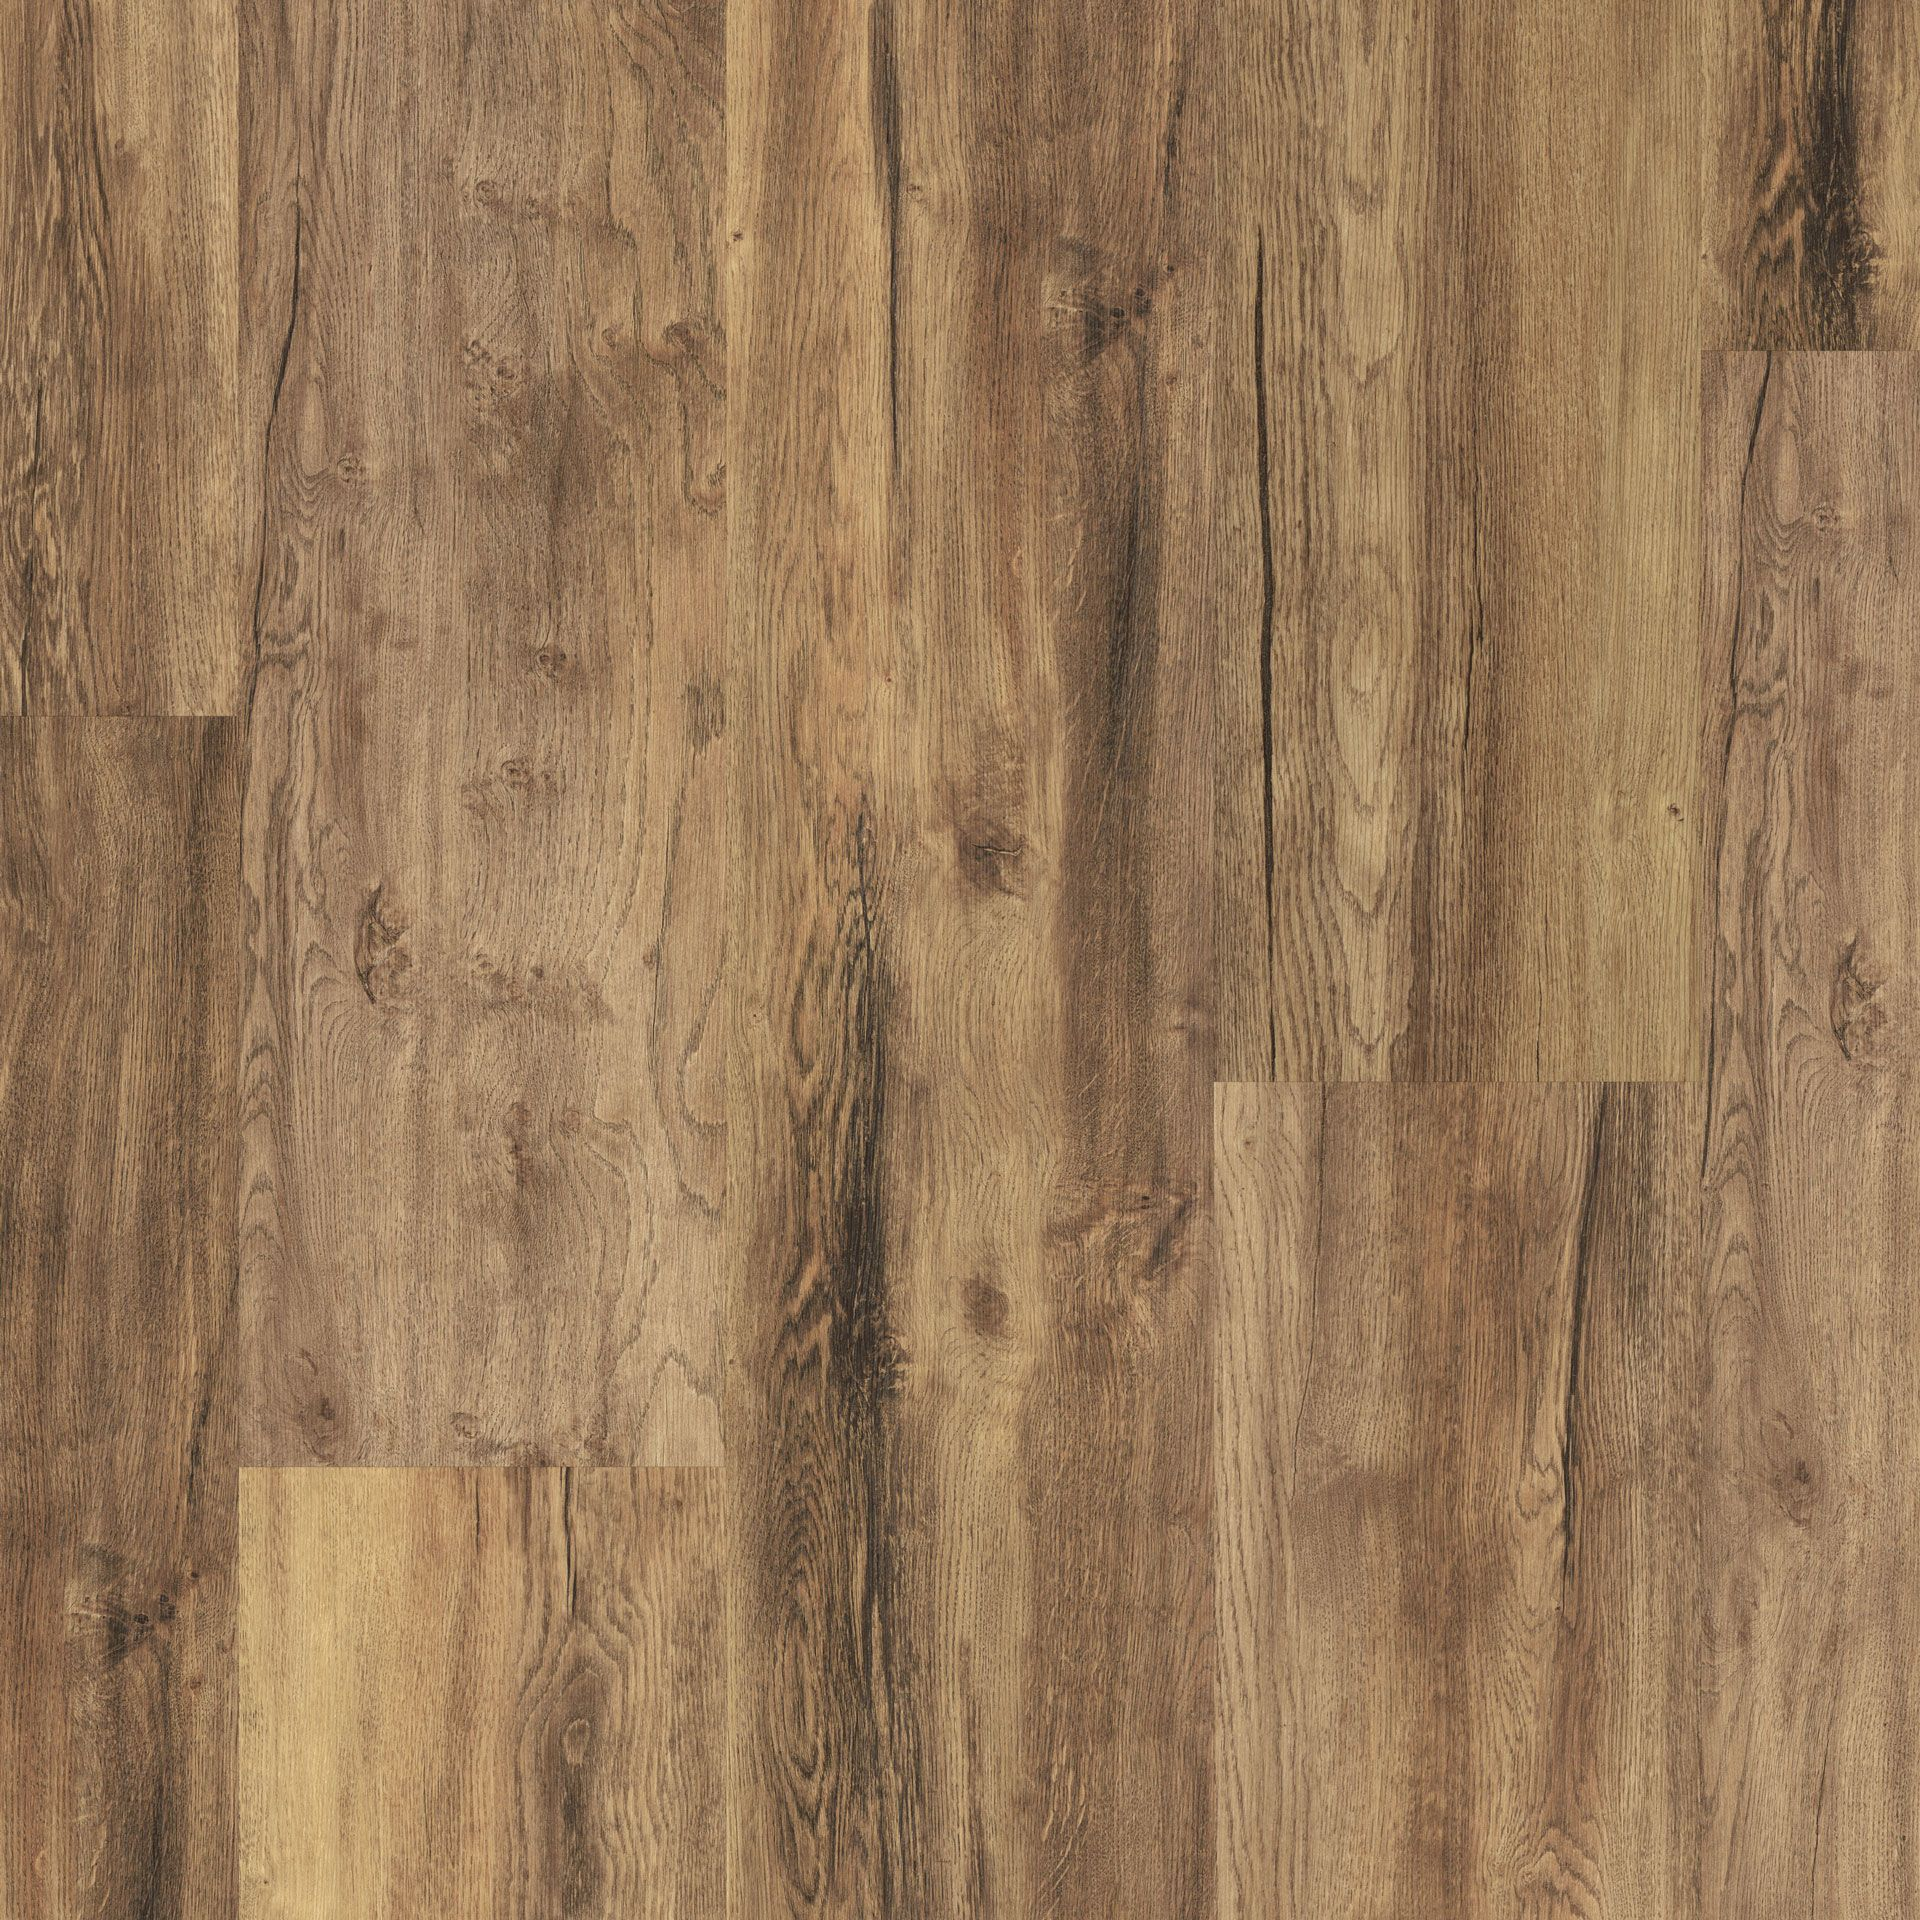 Mid natural wood effect flooring planks home pinterest karndean luxury vinyl tile and planks at the guaranteed best priceget the biggest savings on karndean vinyl flooring loose lay plank collection at acwg dailygadgetfo Choice Image